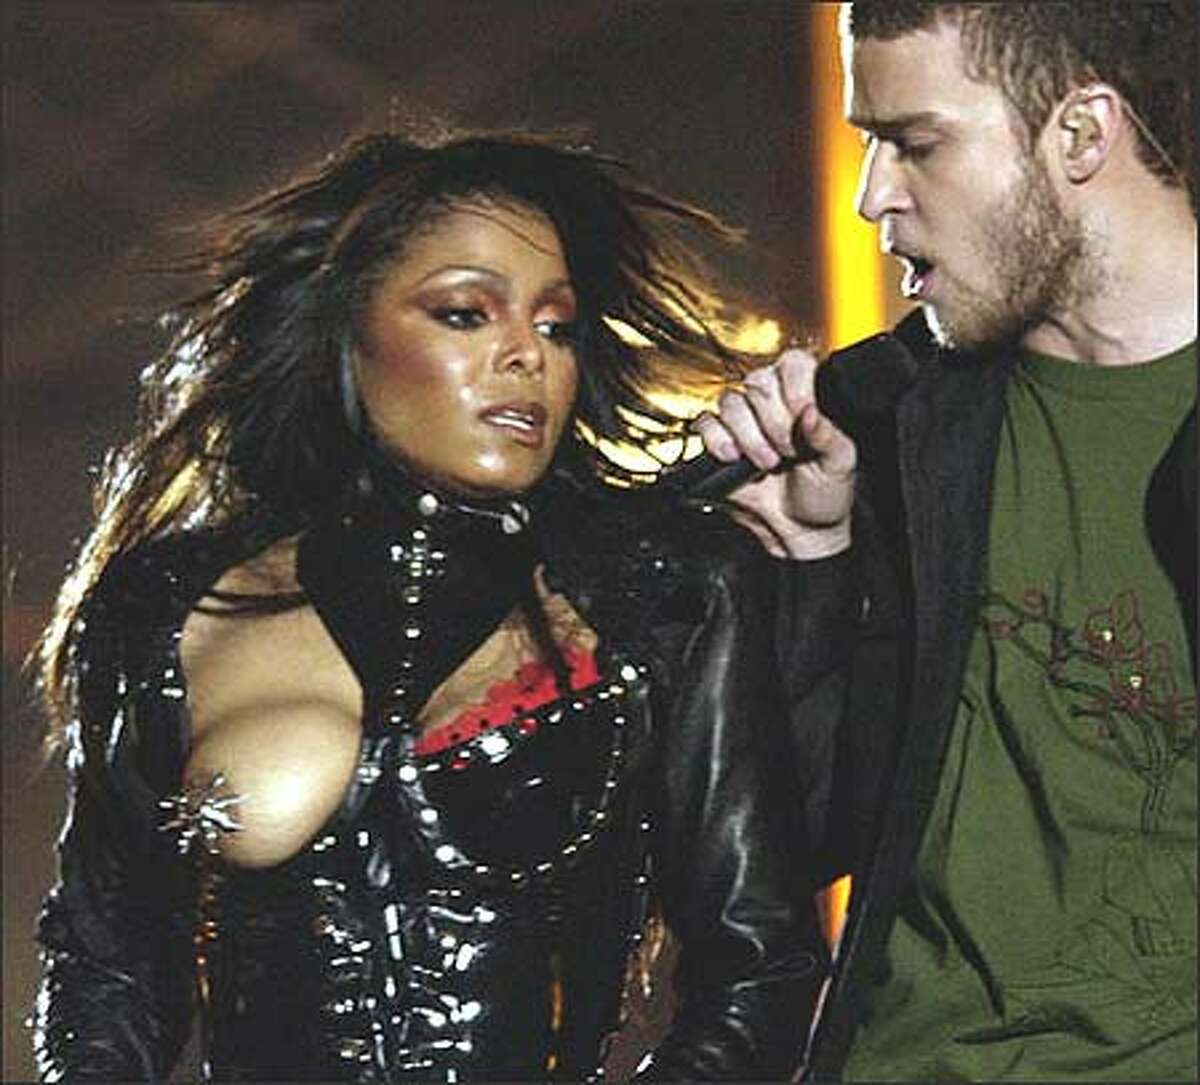 Entertainer Janet Jackson's breast is exposed after her outfit came undone during the halftime performance with Justin Timberlake at Super Bowl XXXVIII in Houston Sunday. (AP Photo/David Phillip)